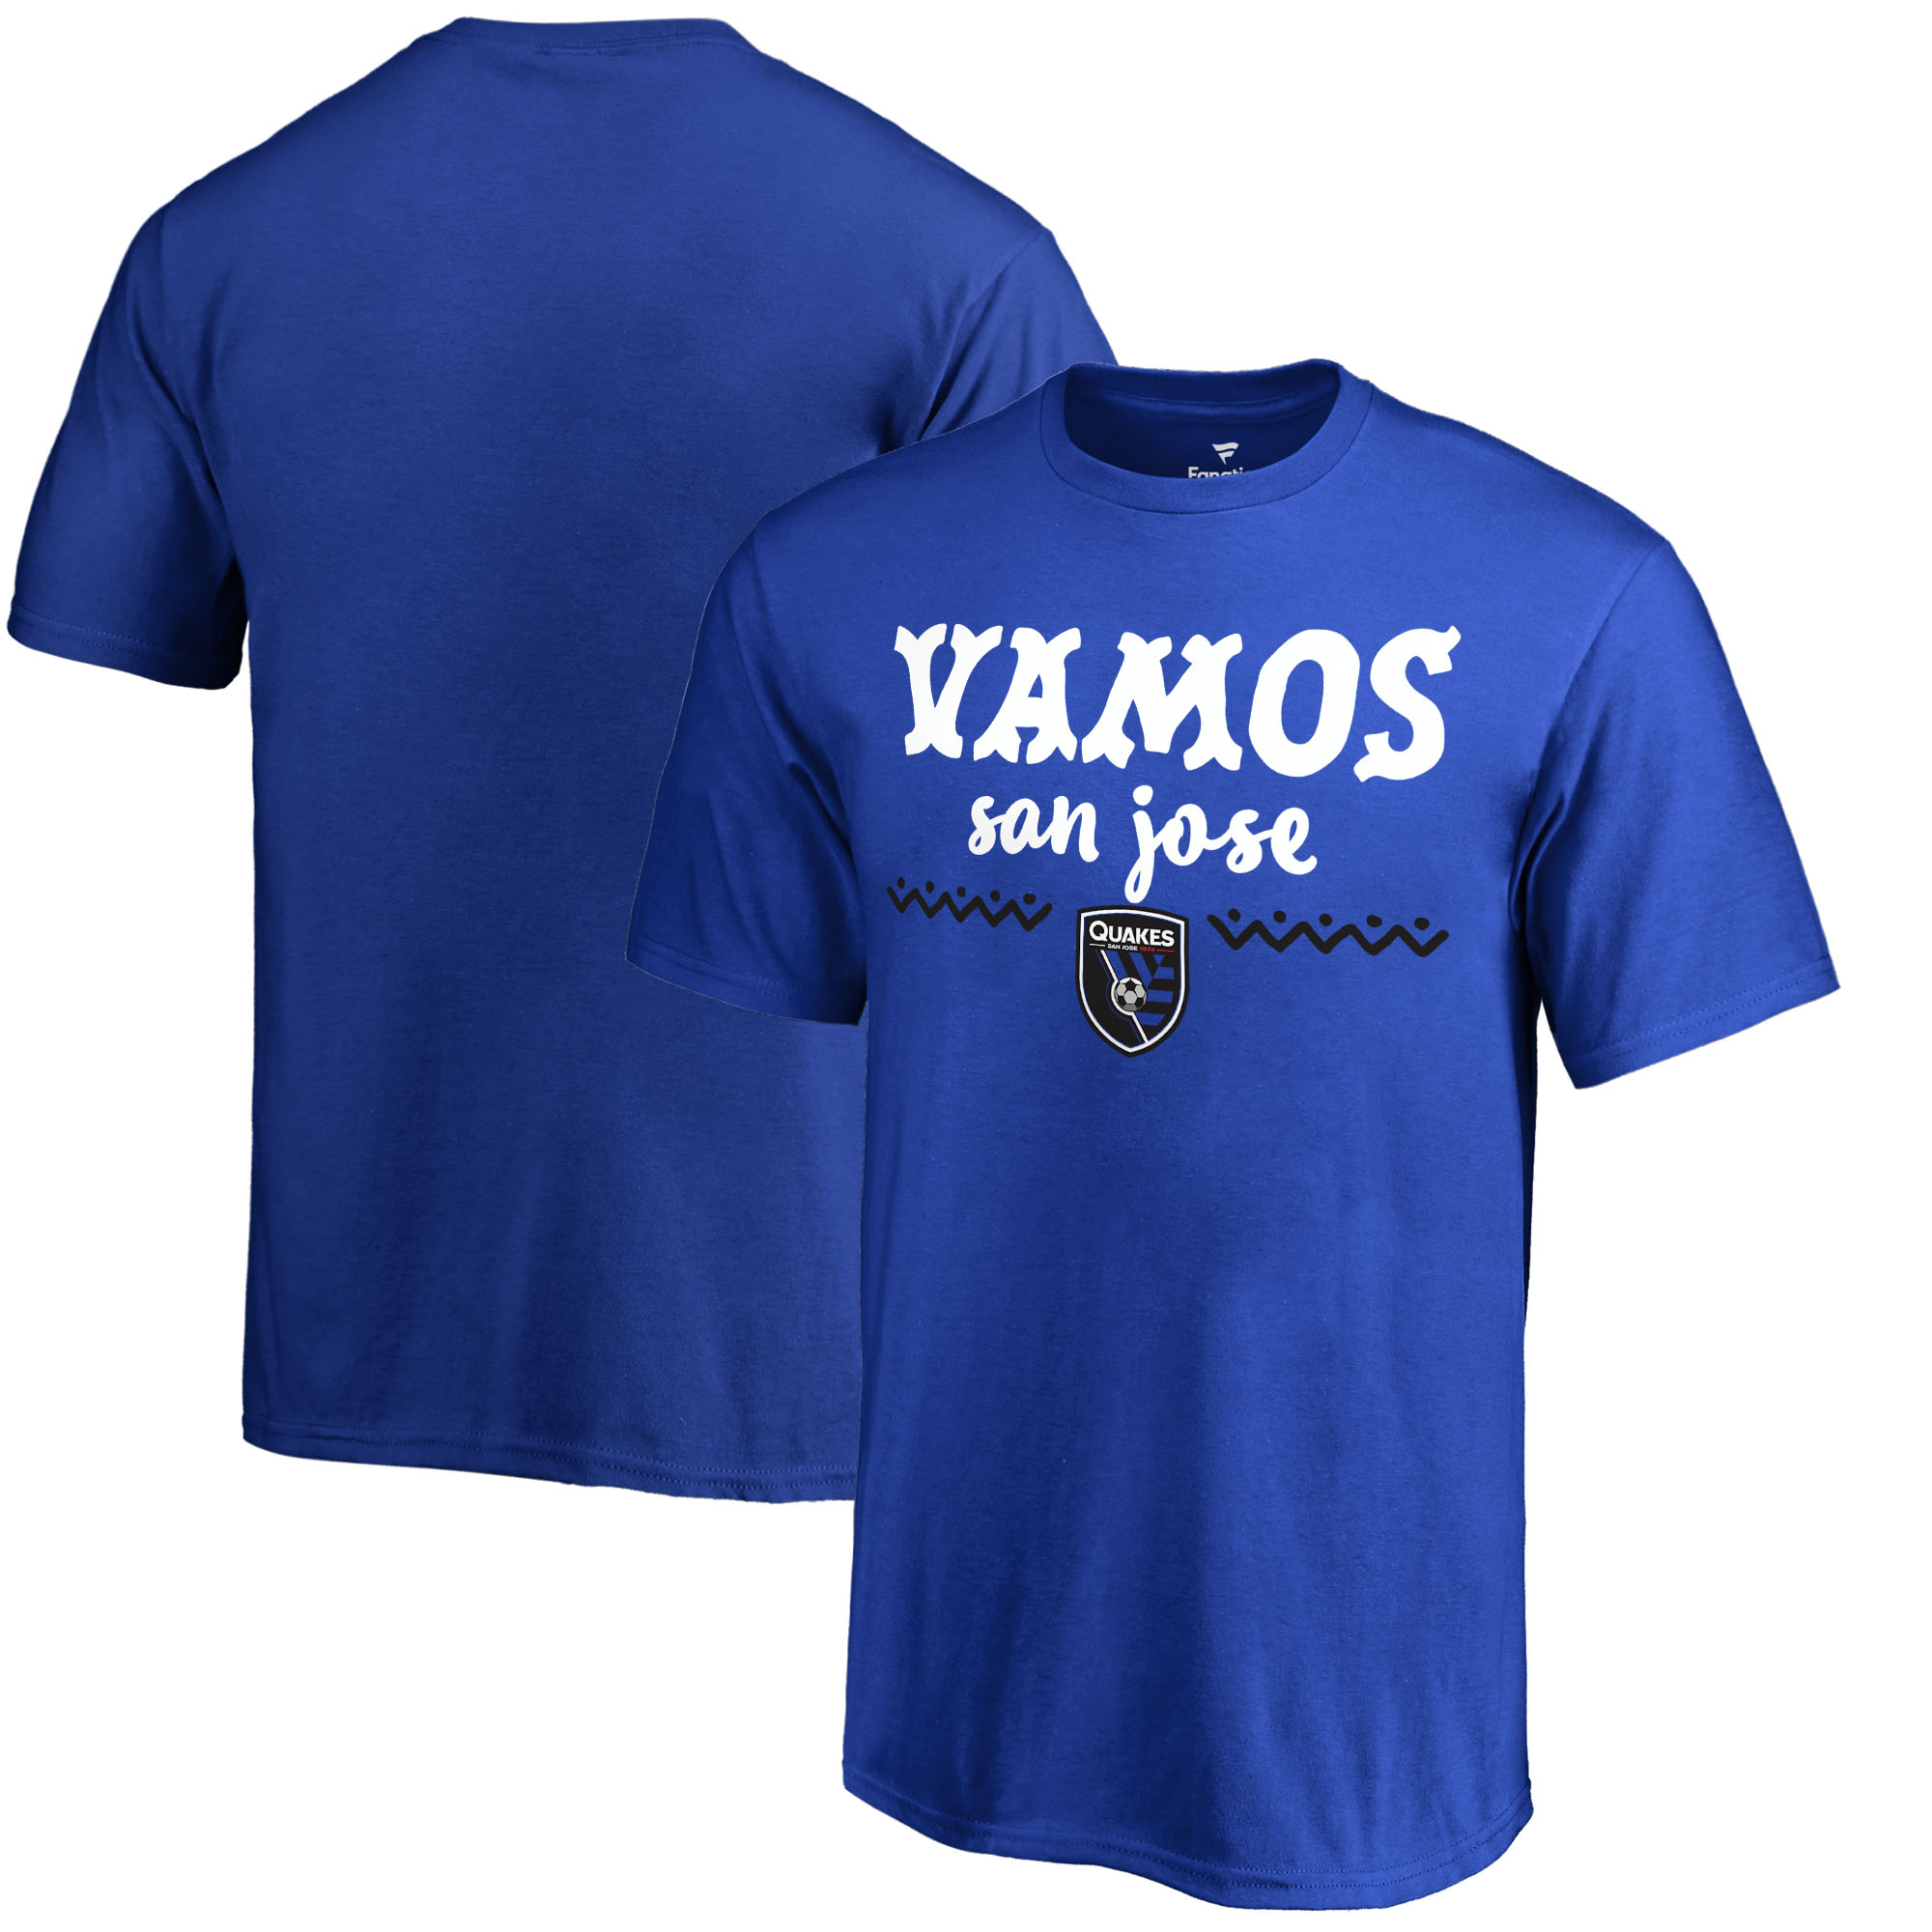 San Jose Earthquakes Fanatics Branded Youth Hispanic Heritage Let's Go T-Shirt - Blue